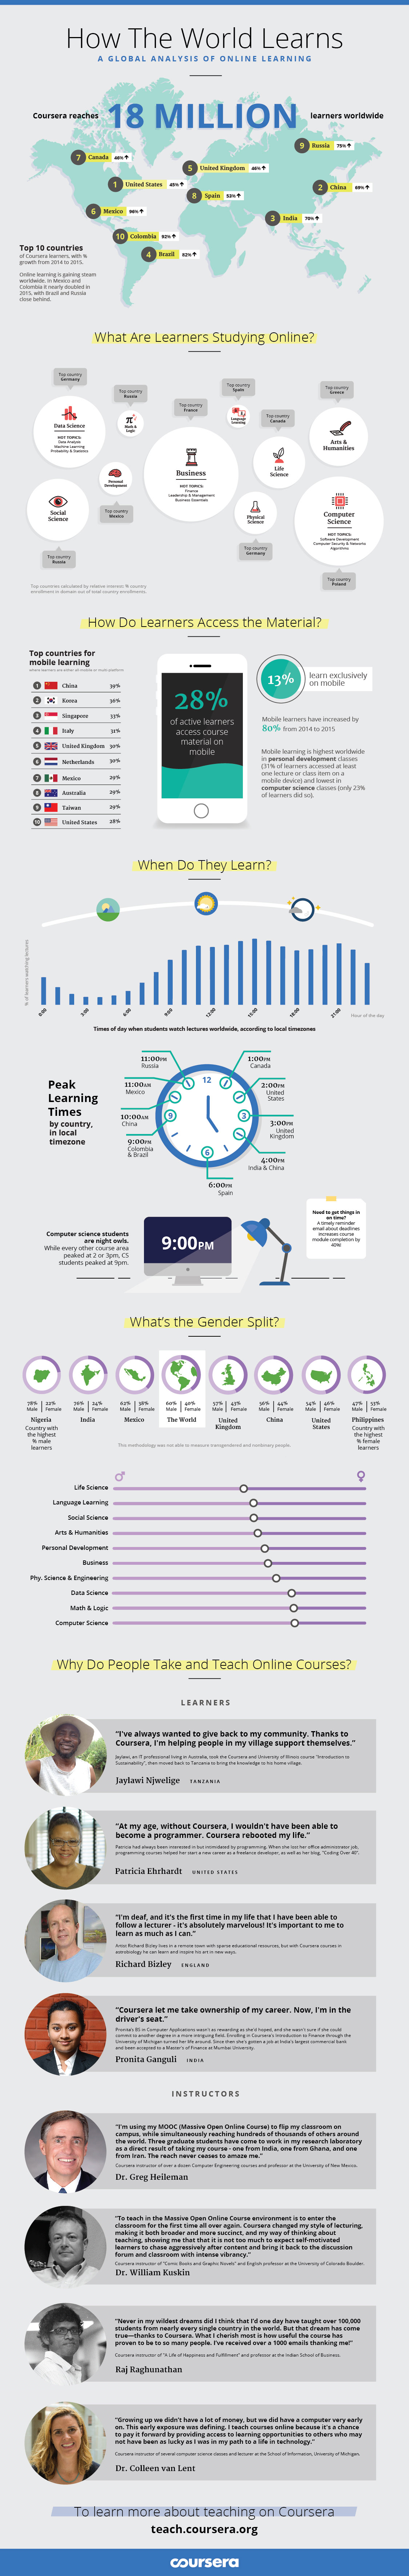 Introducing Our New Infographic: How the World Learns